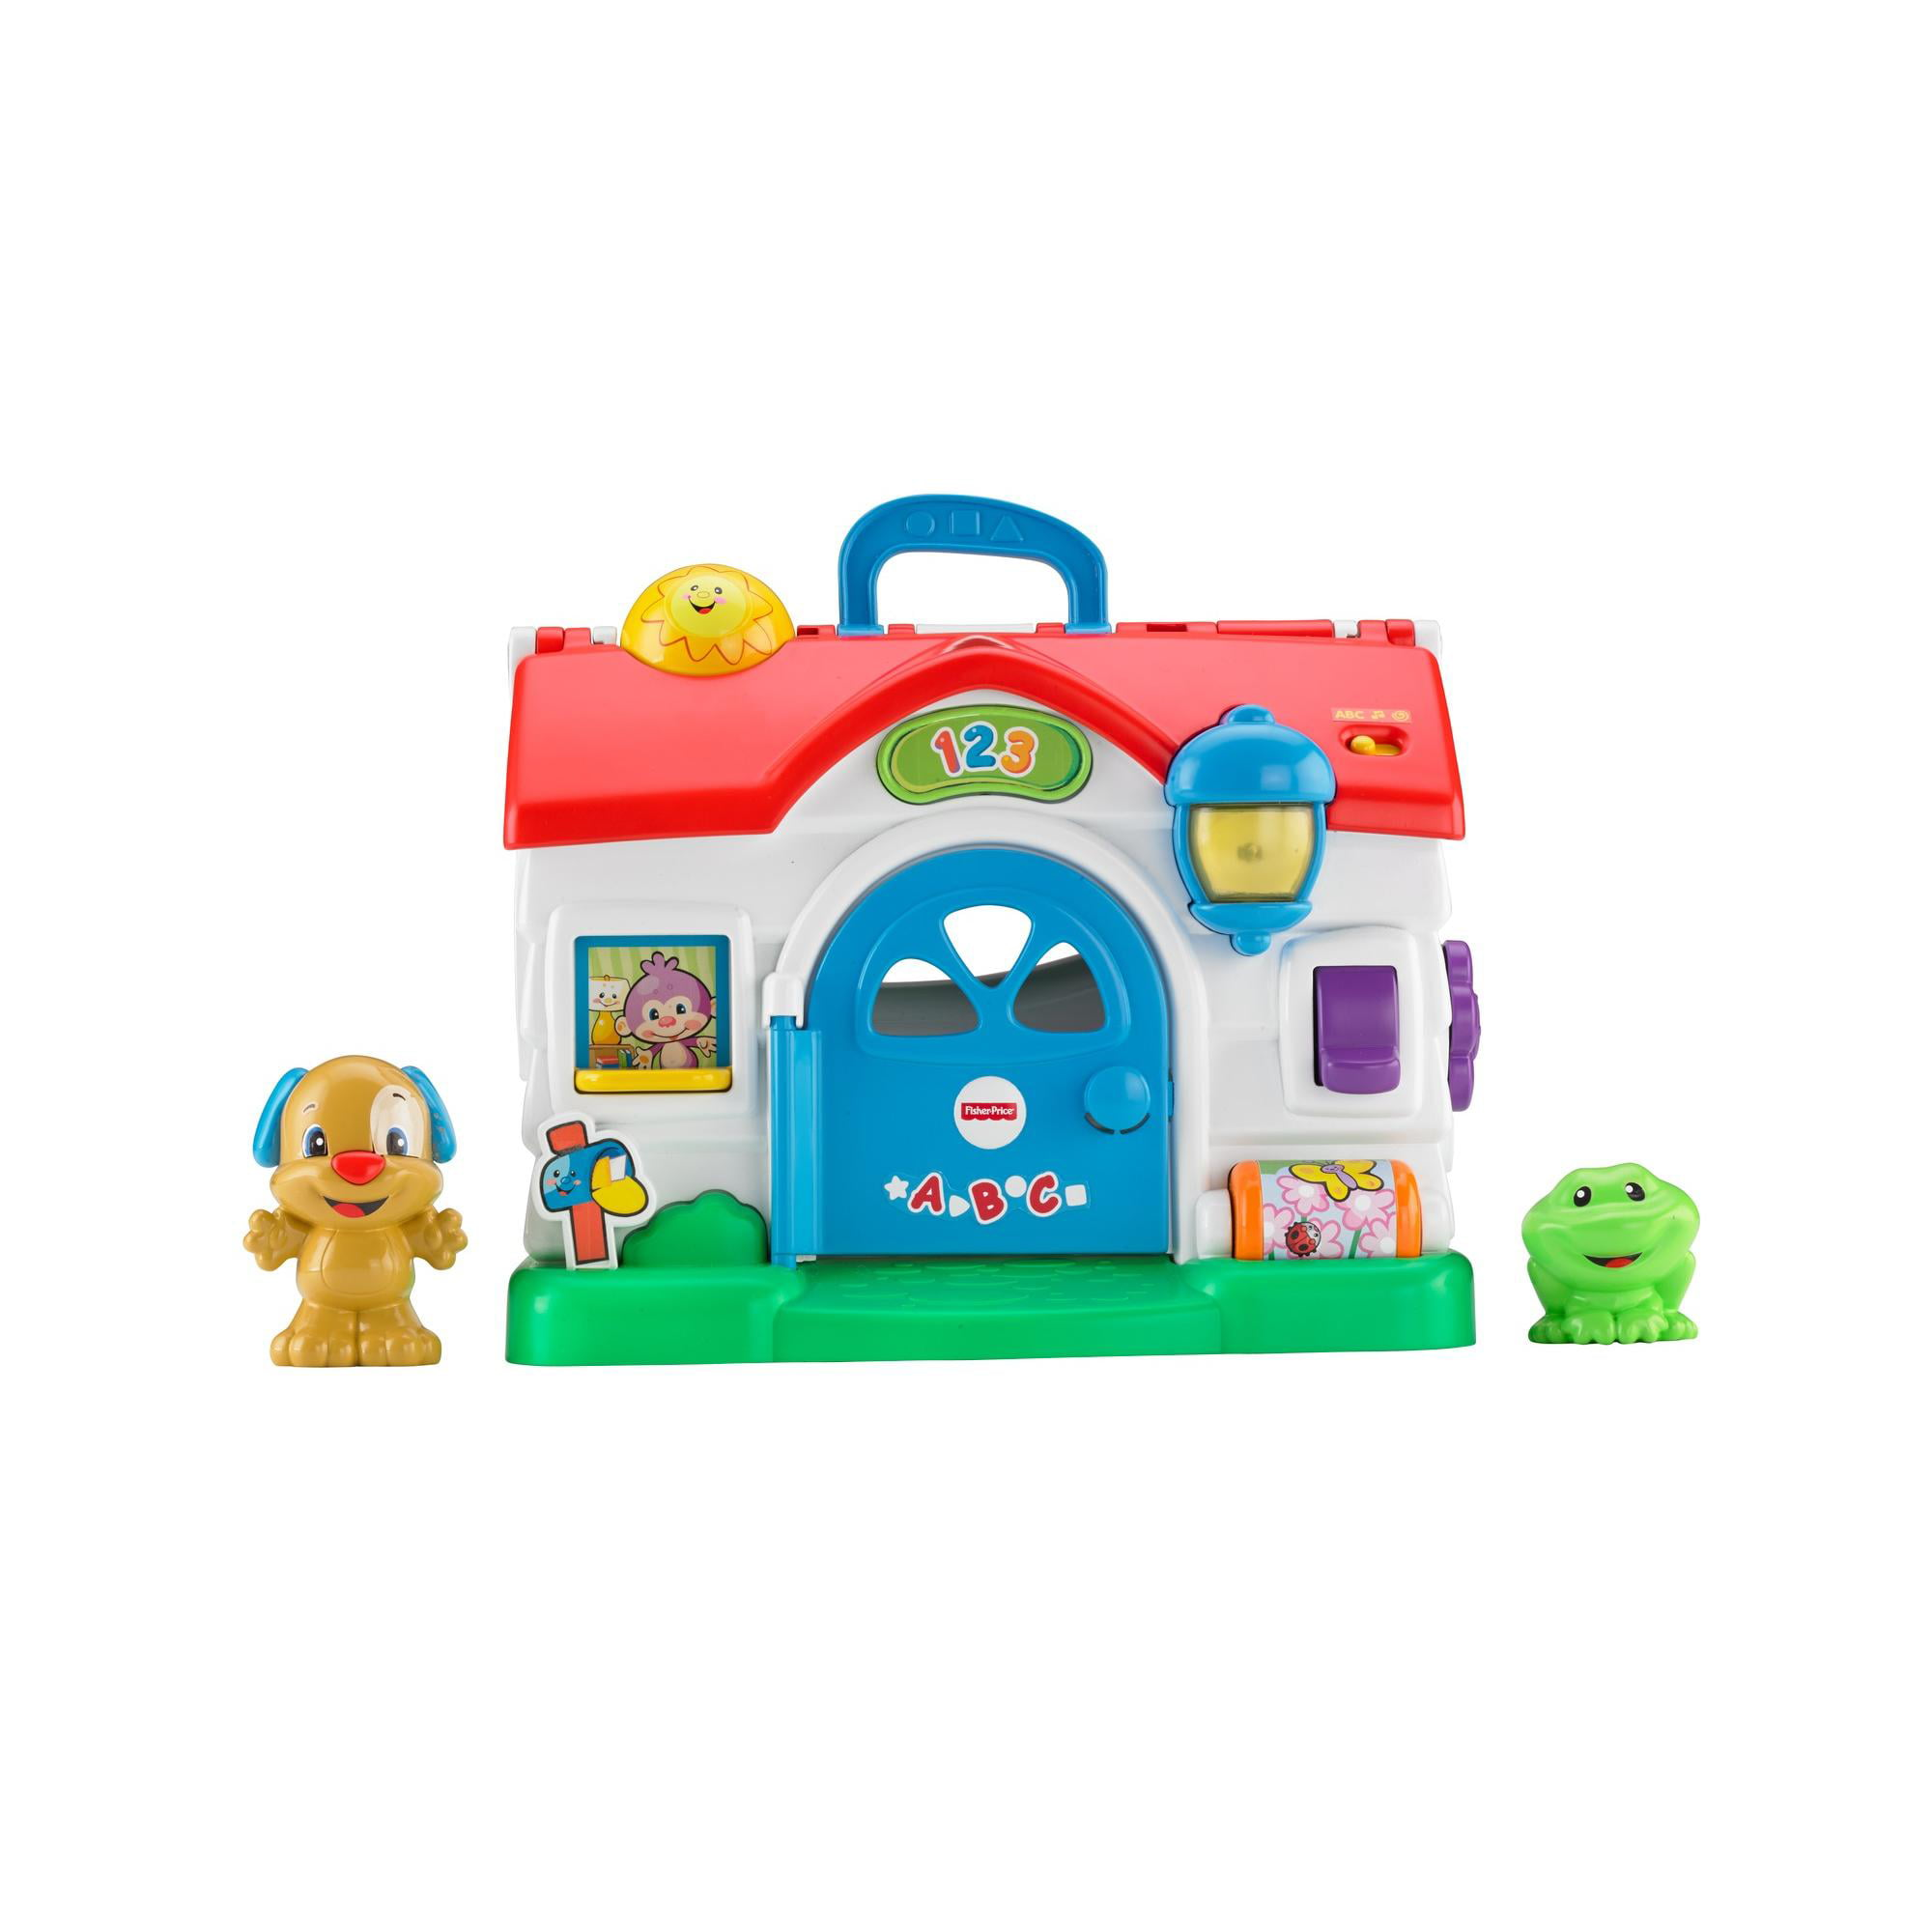 Fisher Price Laugh & Learn Puppy's Activity Home by Mattel, Inc,